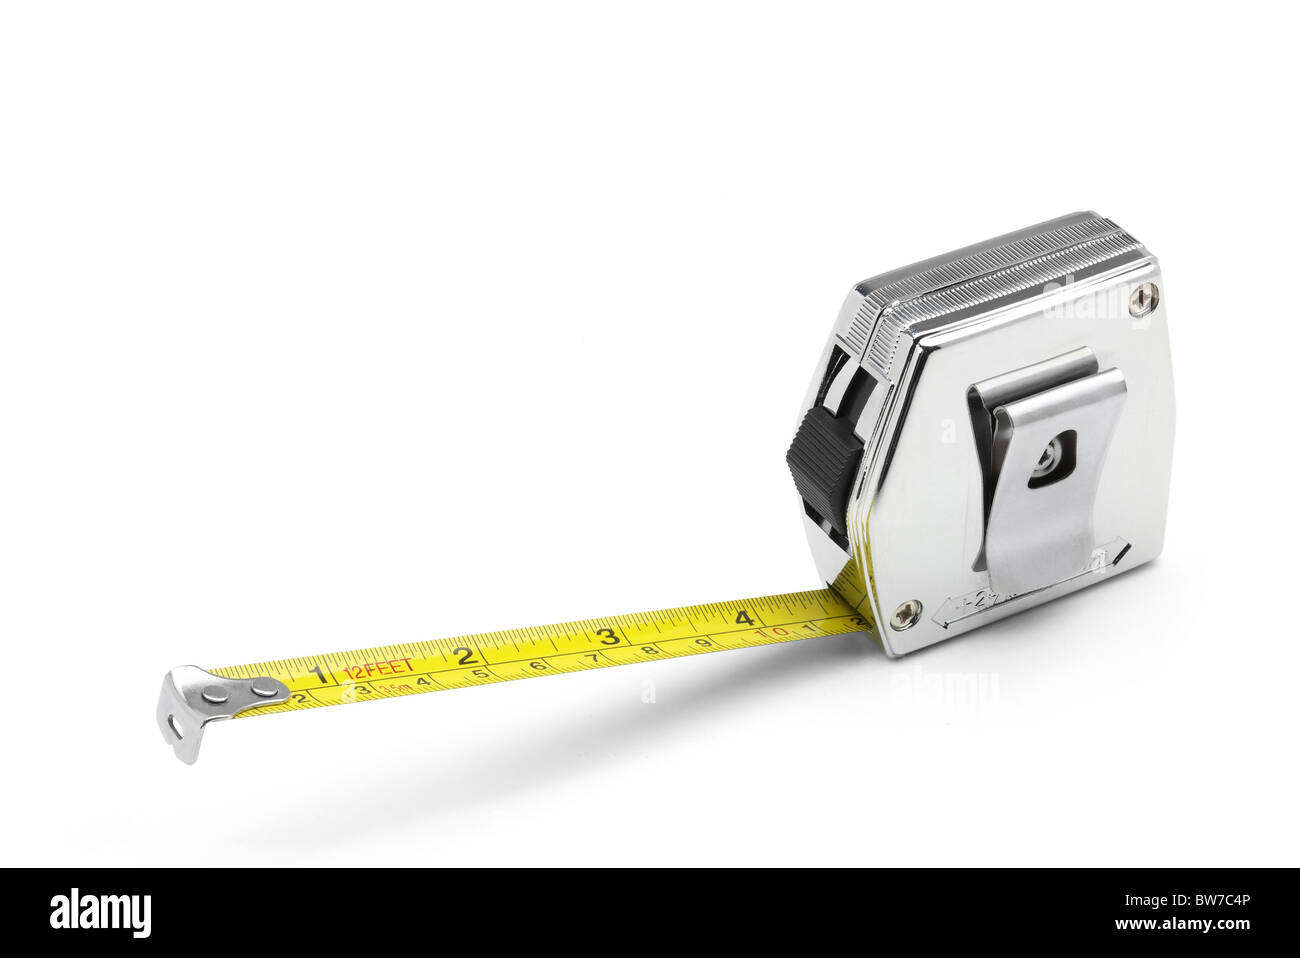 Tape measure and rule - Stock Image